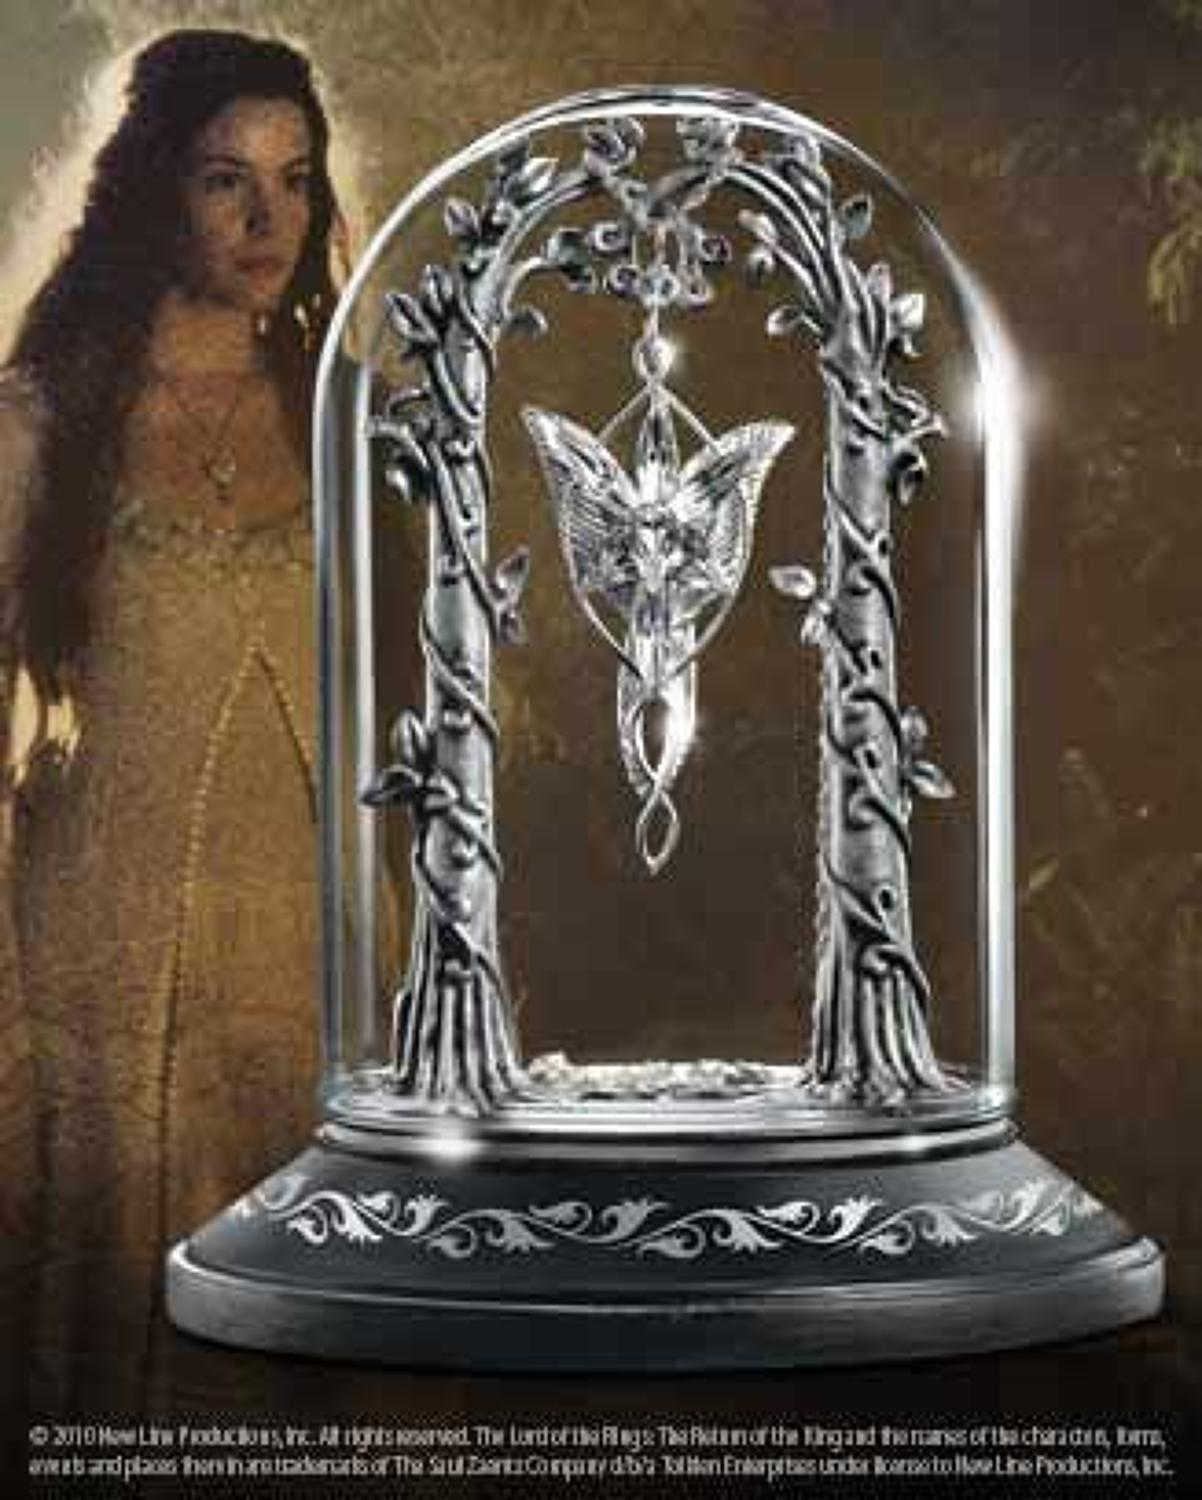 Lord of The Rings - Return of the King Arwen's Amulet